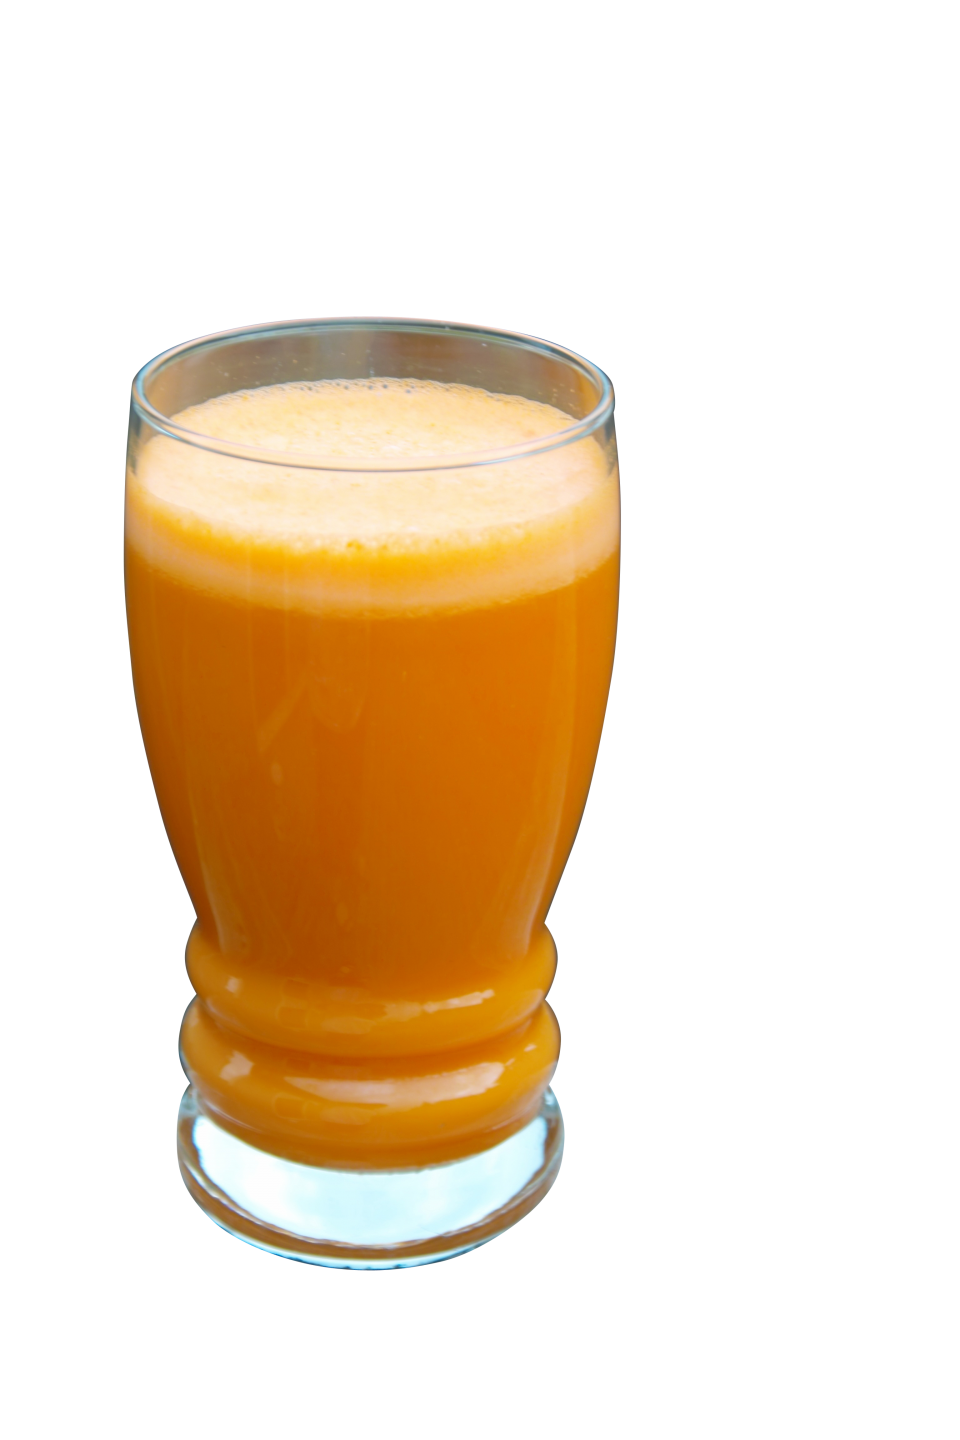 A Glass Filled with Orange Carrot Juice PNG Image